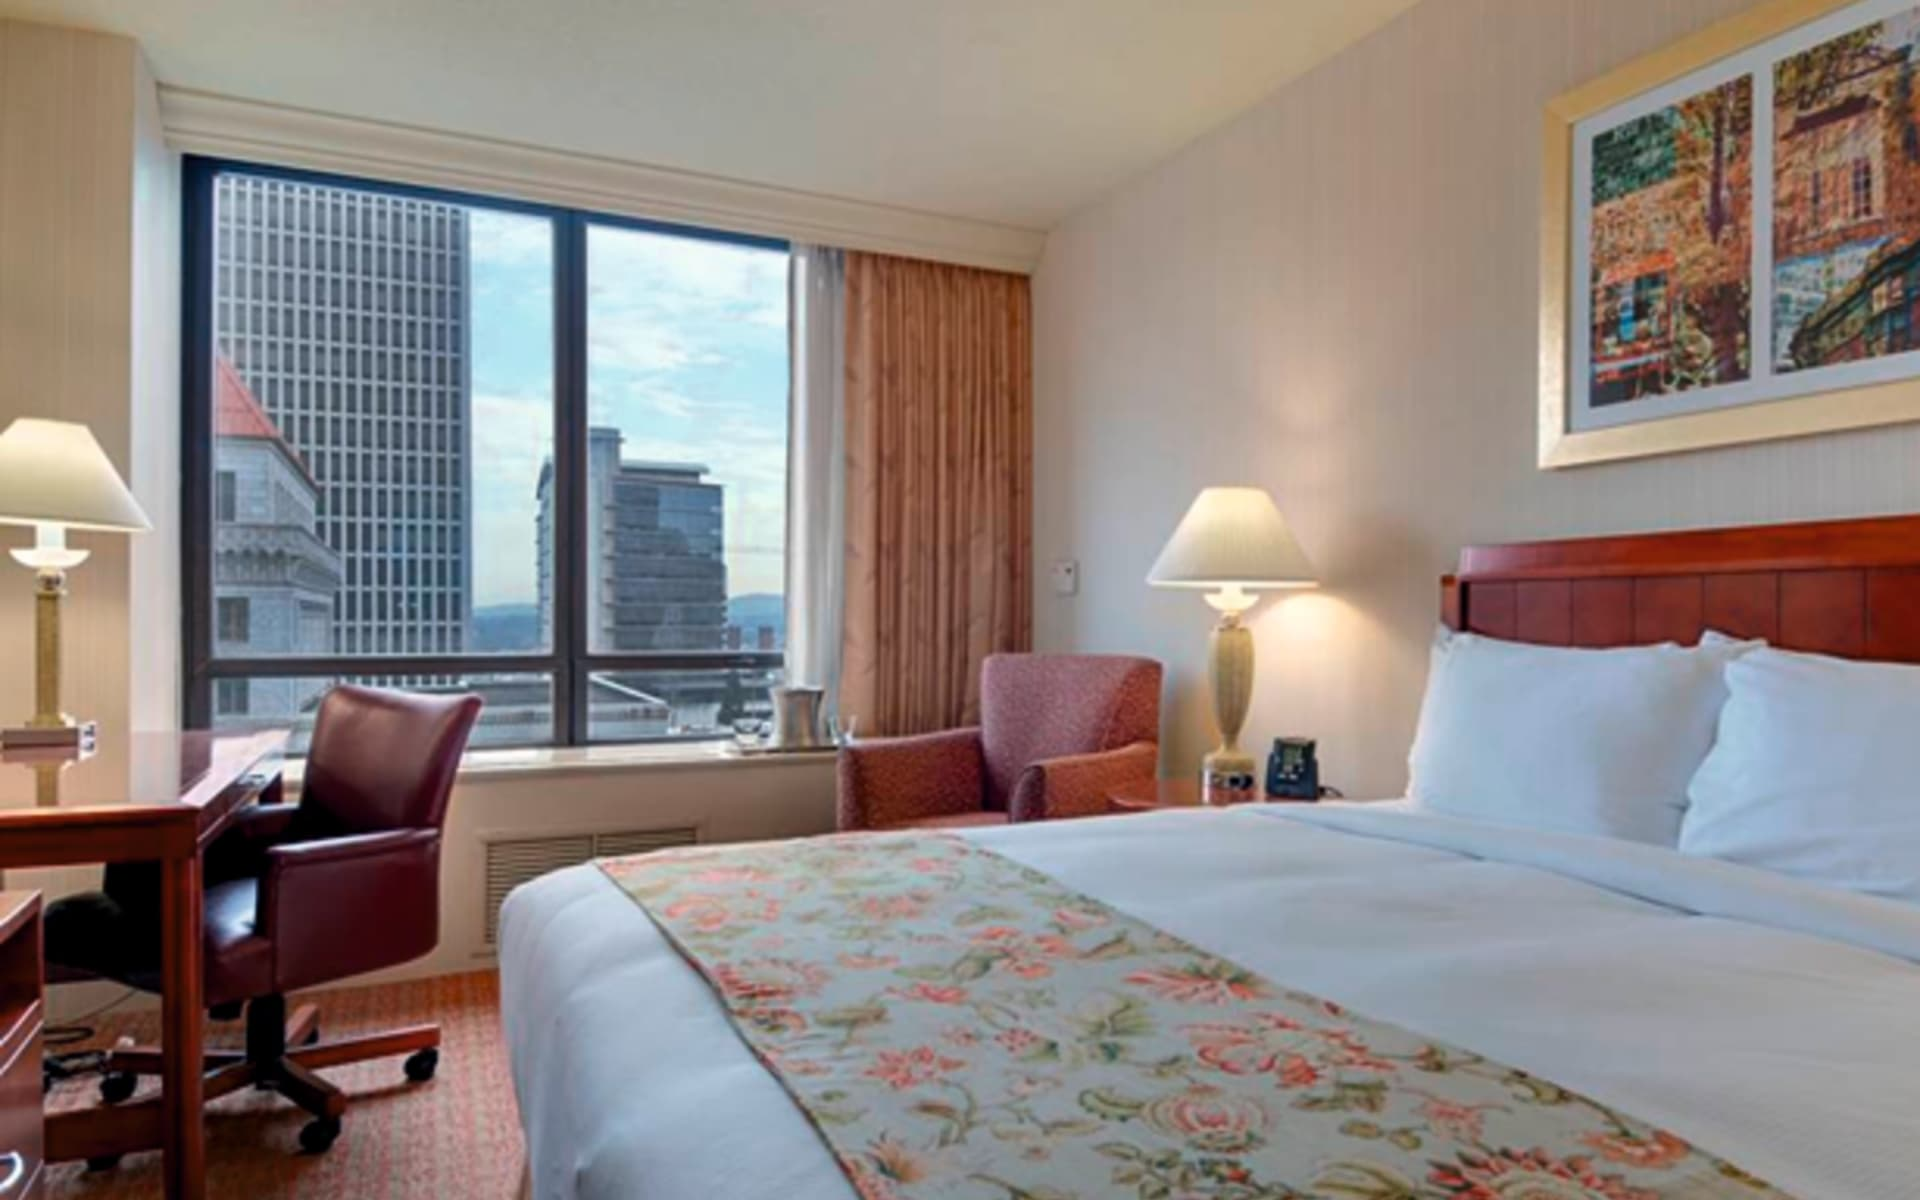 Hilton Portland & Executive Tower: zimmer hilton portland and executive tower doppelzimmer